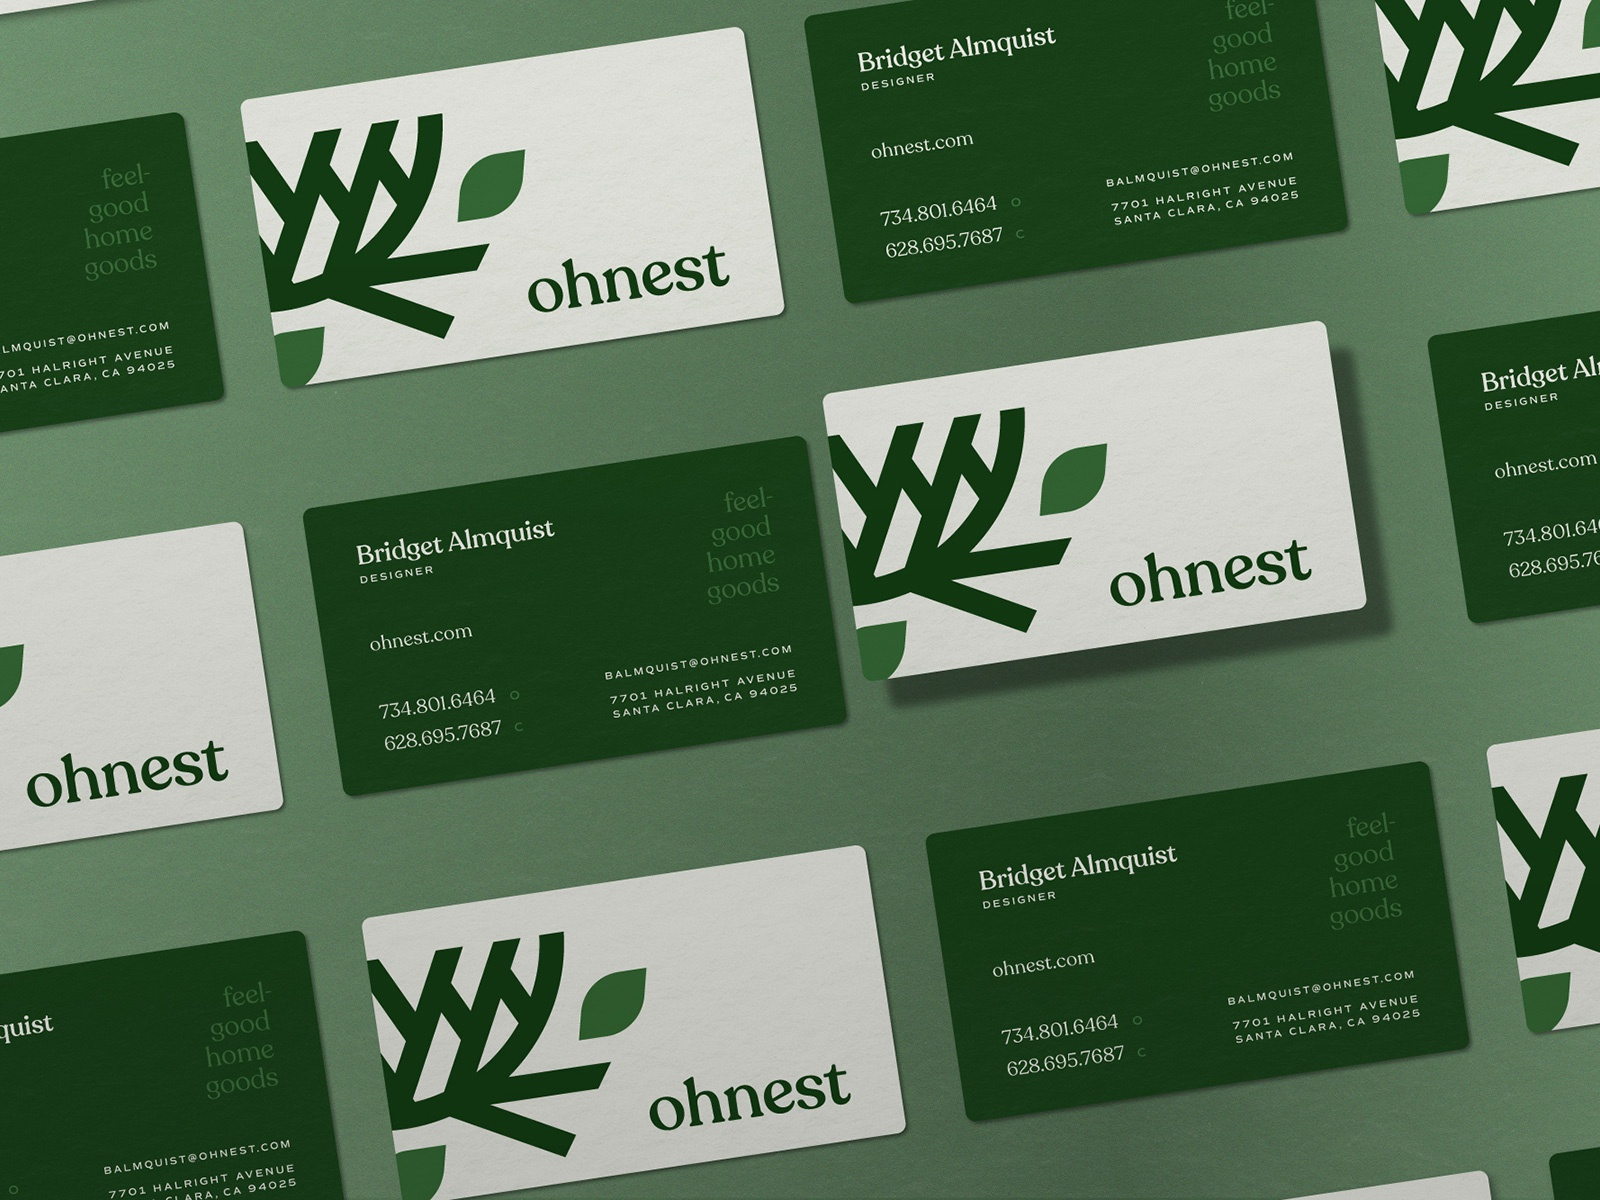 Ohnest businesscards 01 lg